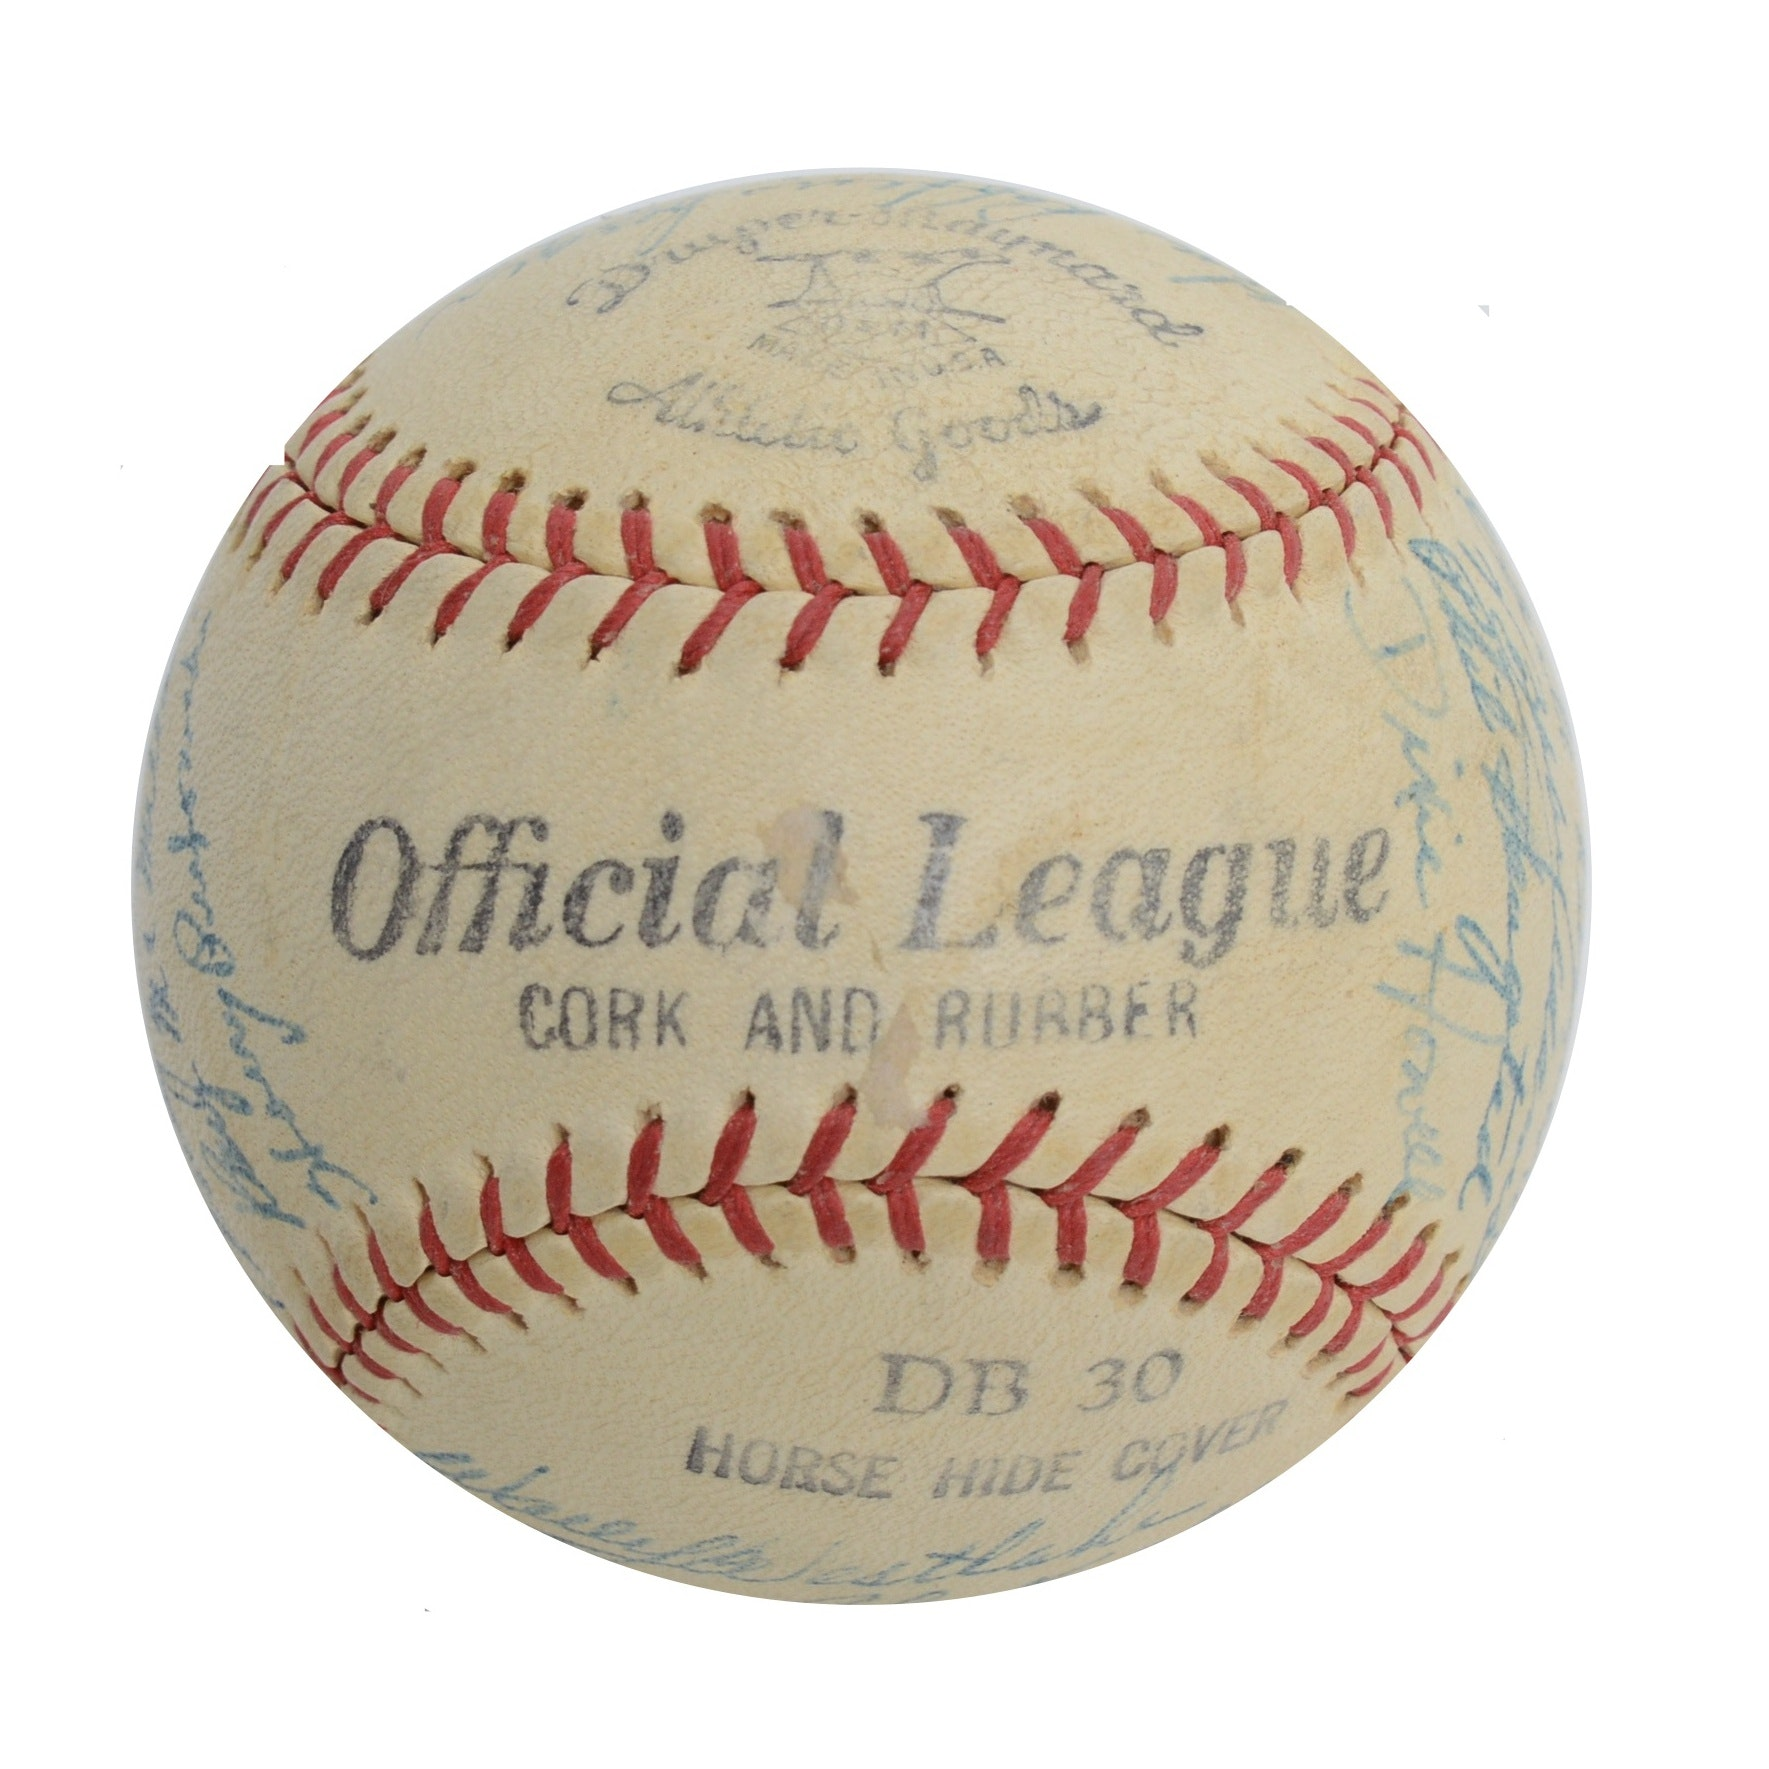 1952 Cincinnati Red Team Autographed Baseball